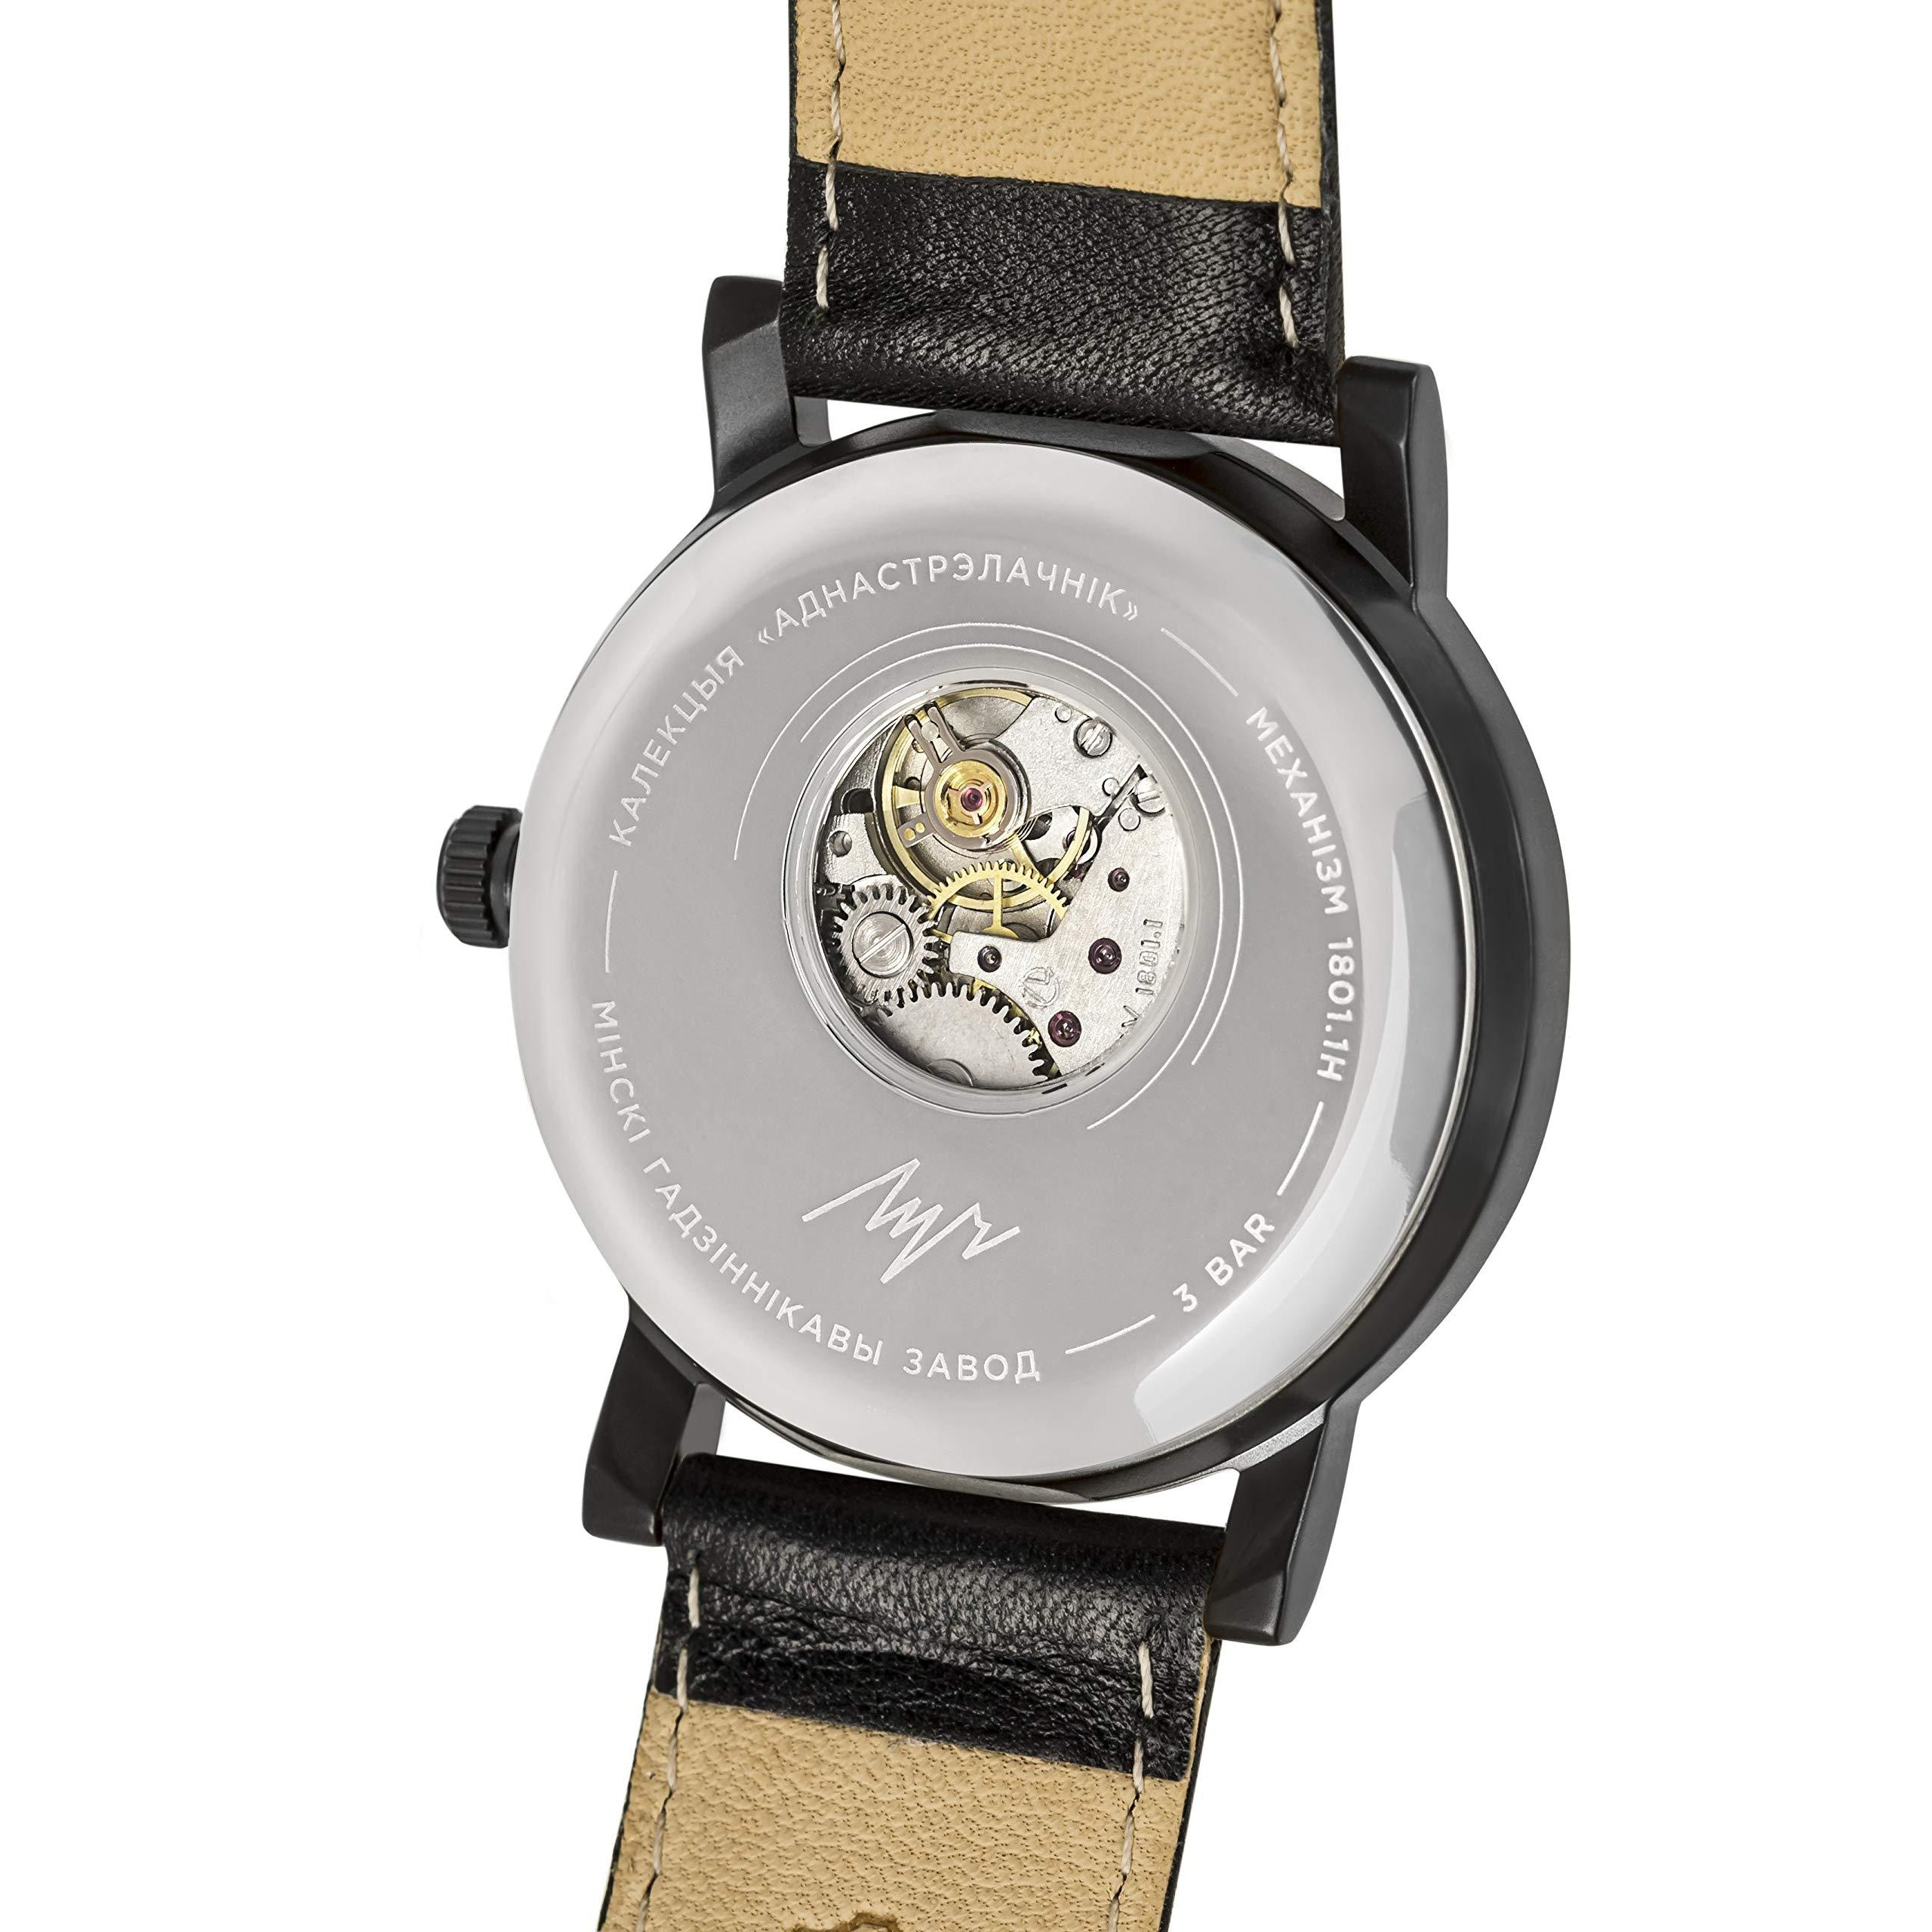 Luch Handwinding One-Handed Watch with Sapphire Crystal - 71957784